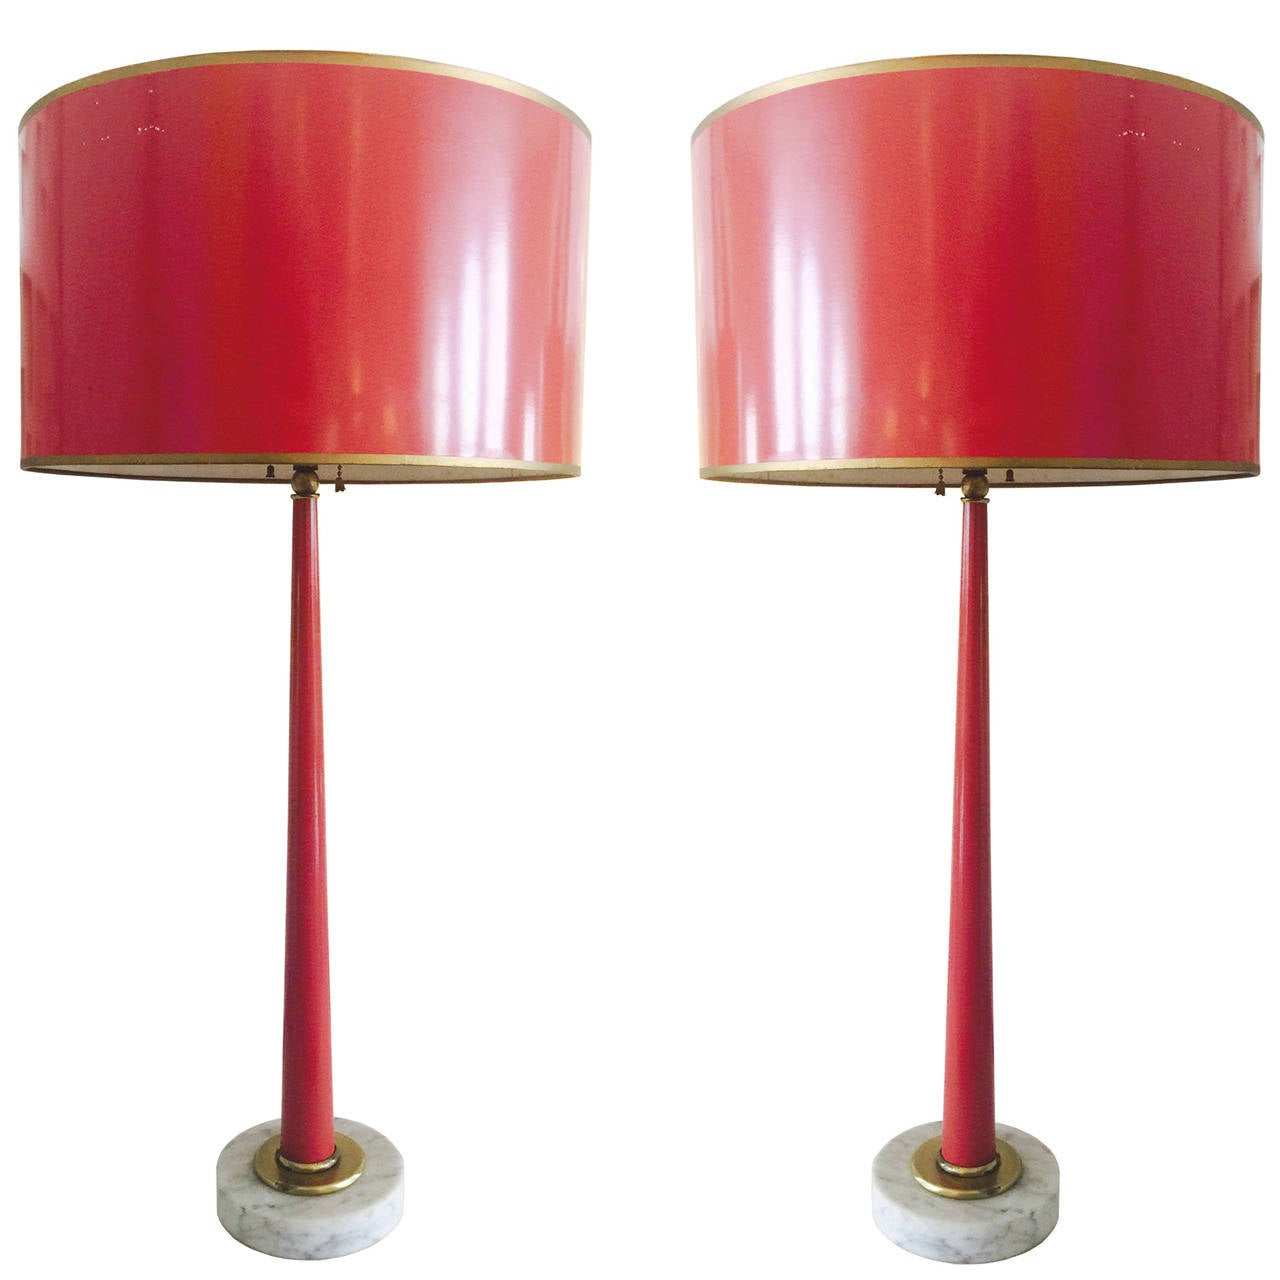 Pair Of 1960s Red Lacquer Lamps And Shades For Sale At 1stdibs